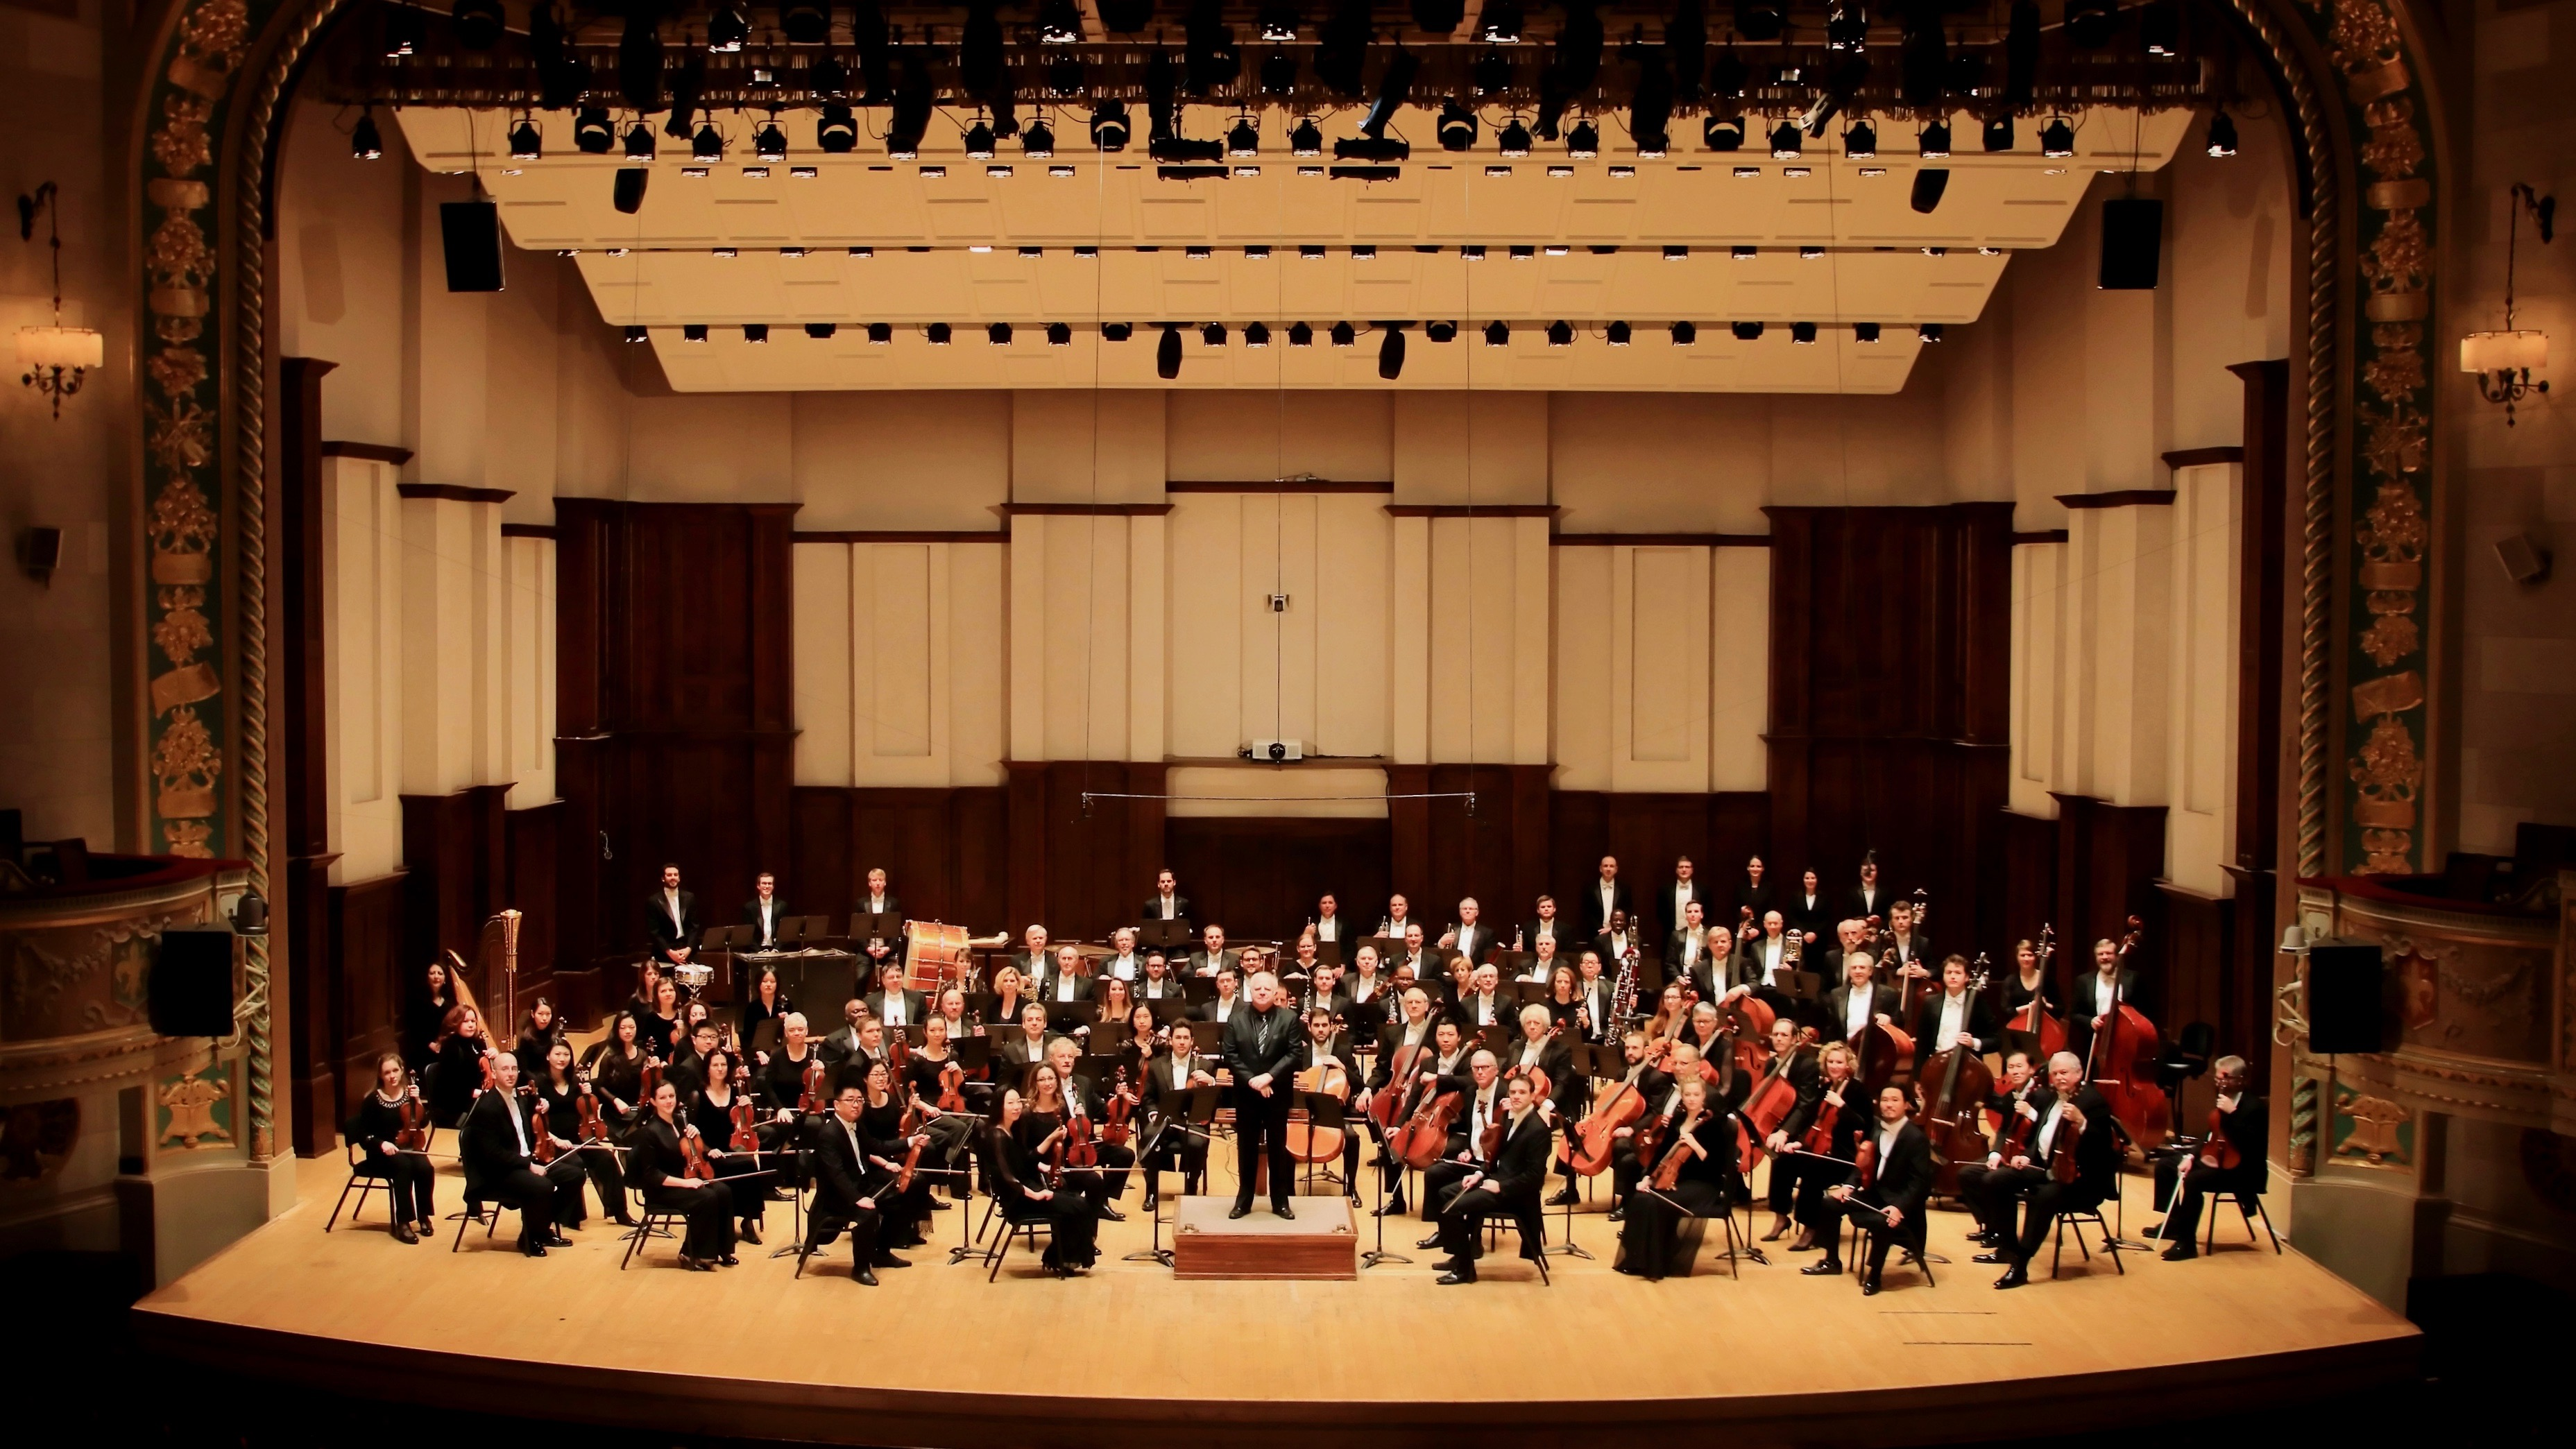 The Detroit Symphony Orchestra onstage.